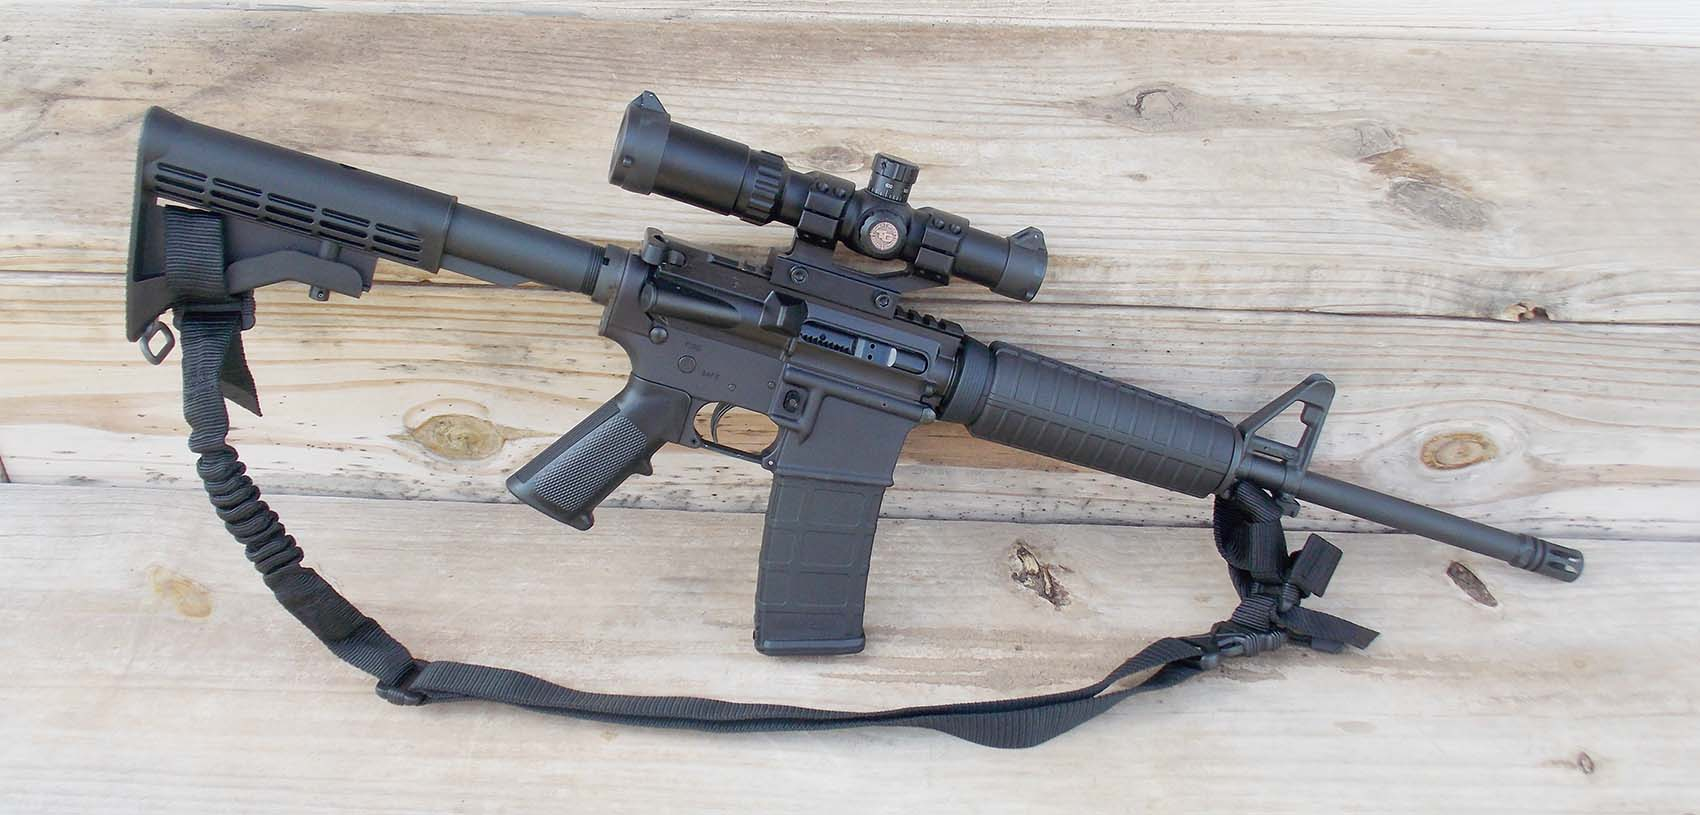 Fitted with a Specter Gear Patrol Sling from Brownells and the TruGlo scope, the Colt Expanse M4 is ready to do the business.